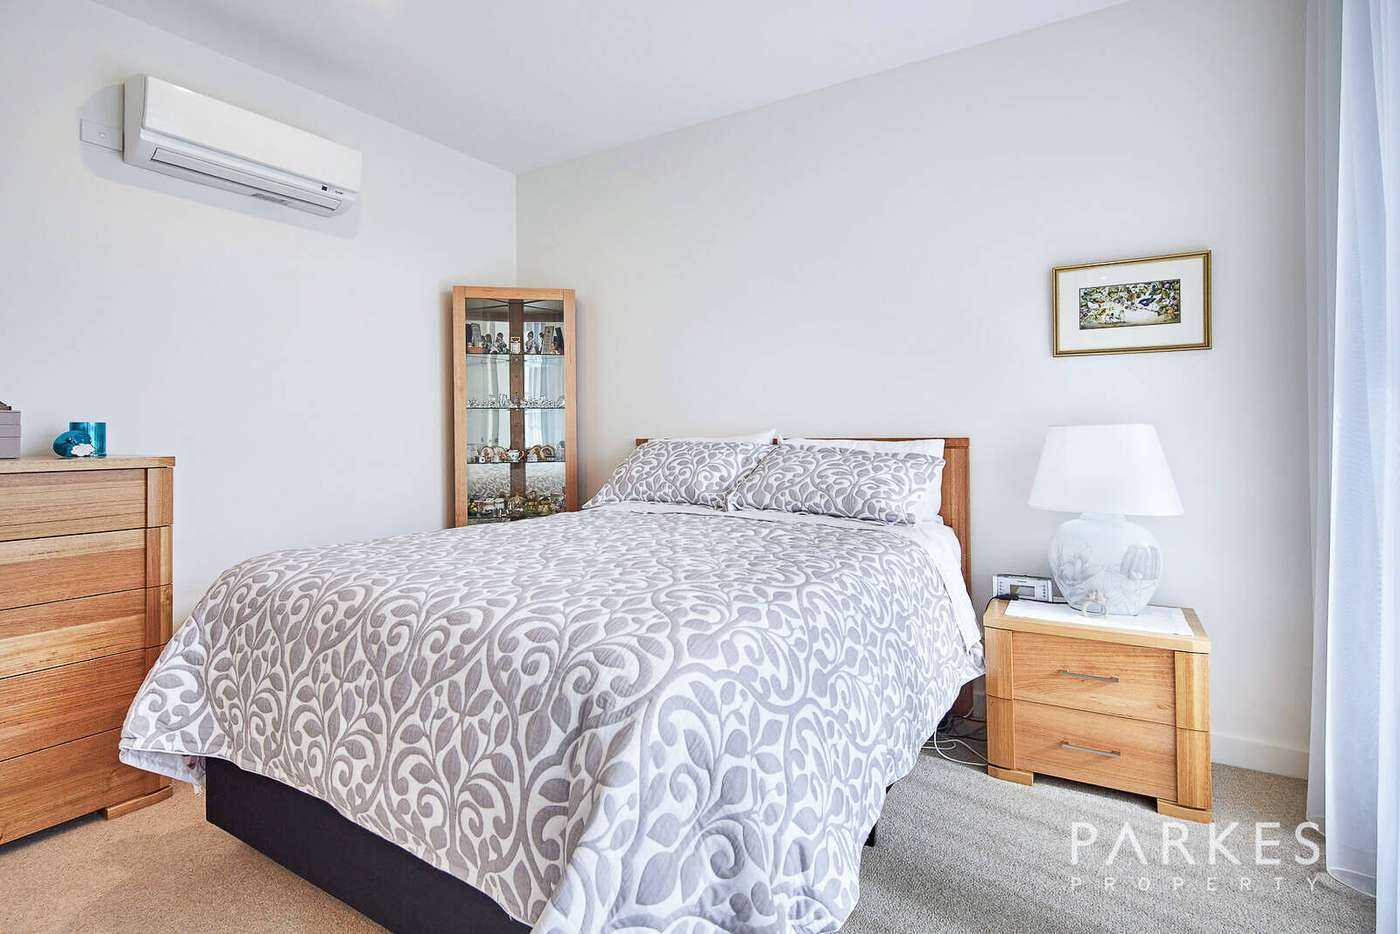 Fifth view of Homely apartment listing, 101/177-179 Blackburn Road, Doncaster East VIC 3109